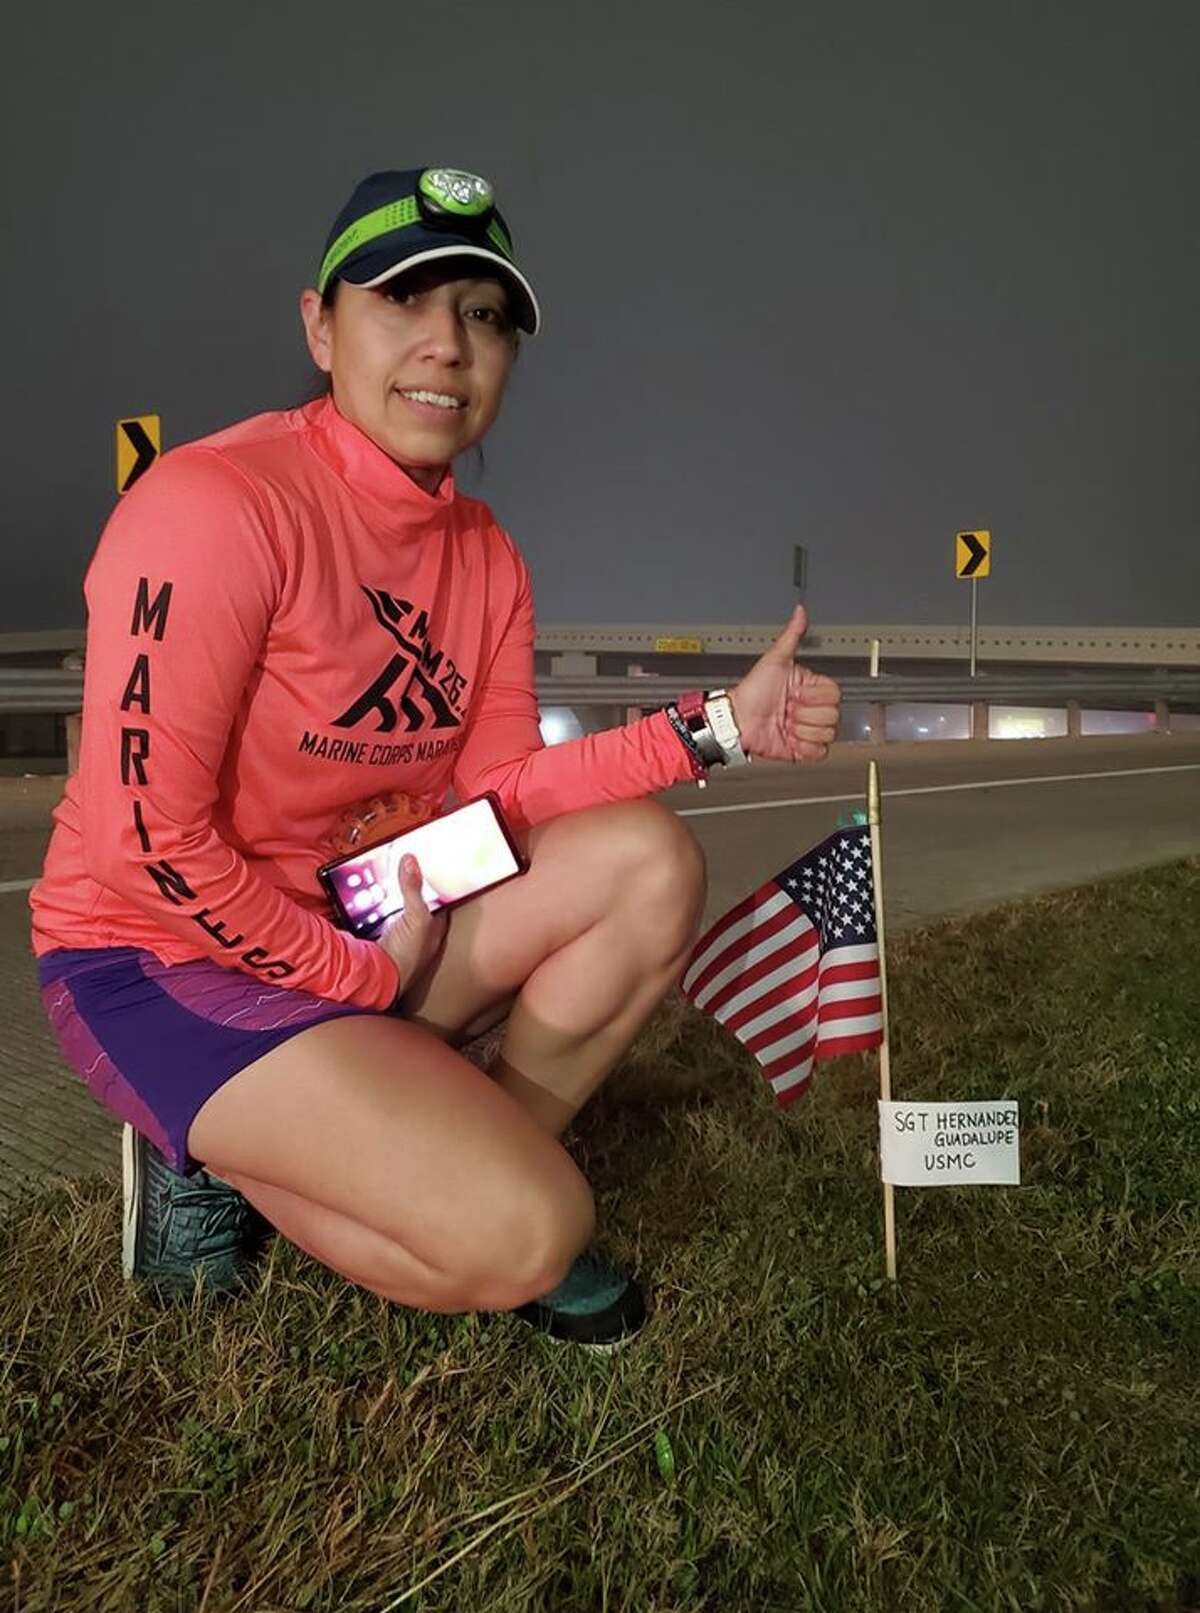 Lupita Hernandez is honoring fellow vets who have suffered from PTSD this week by running 200 miles from Houston to San Antonio, planting a roadside flag every mile in memory of a vet who has fought the disorder.